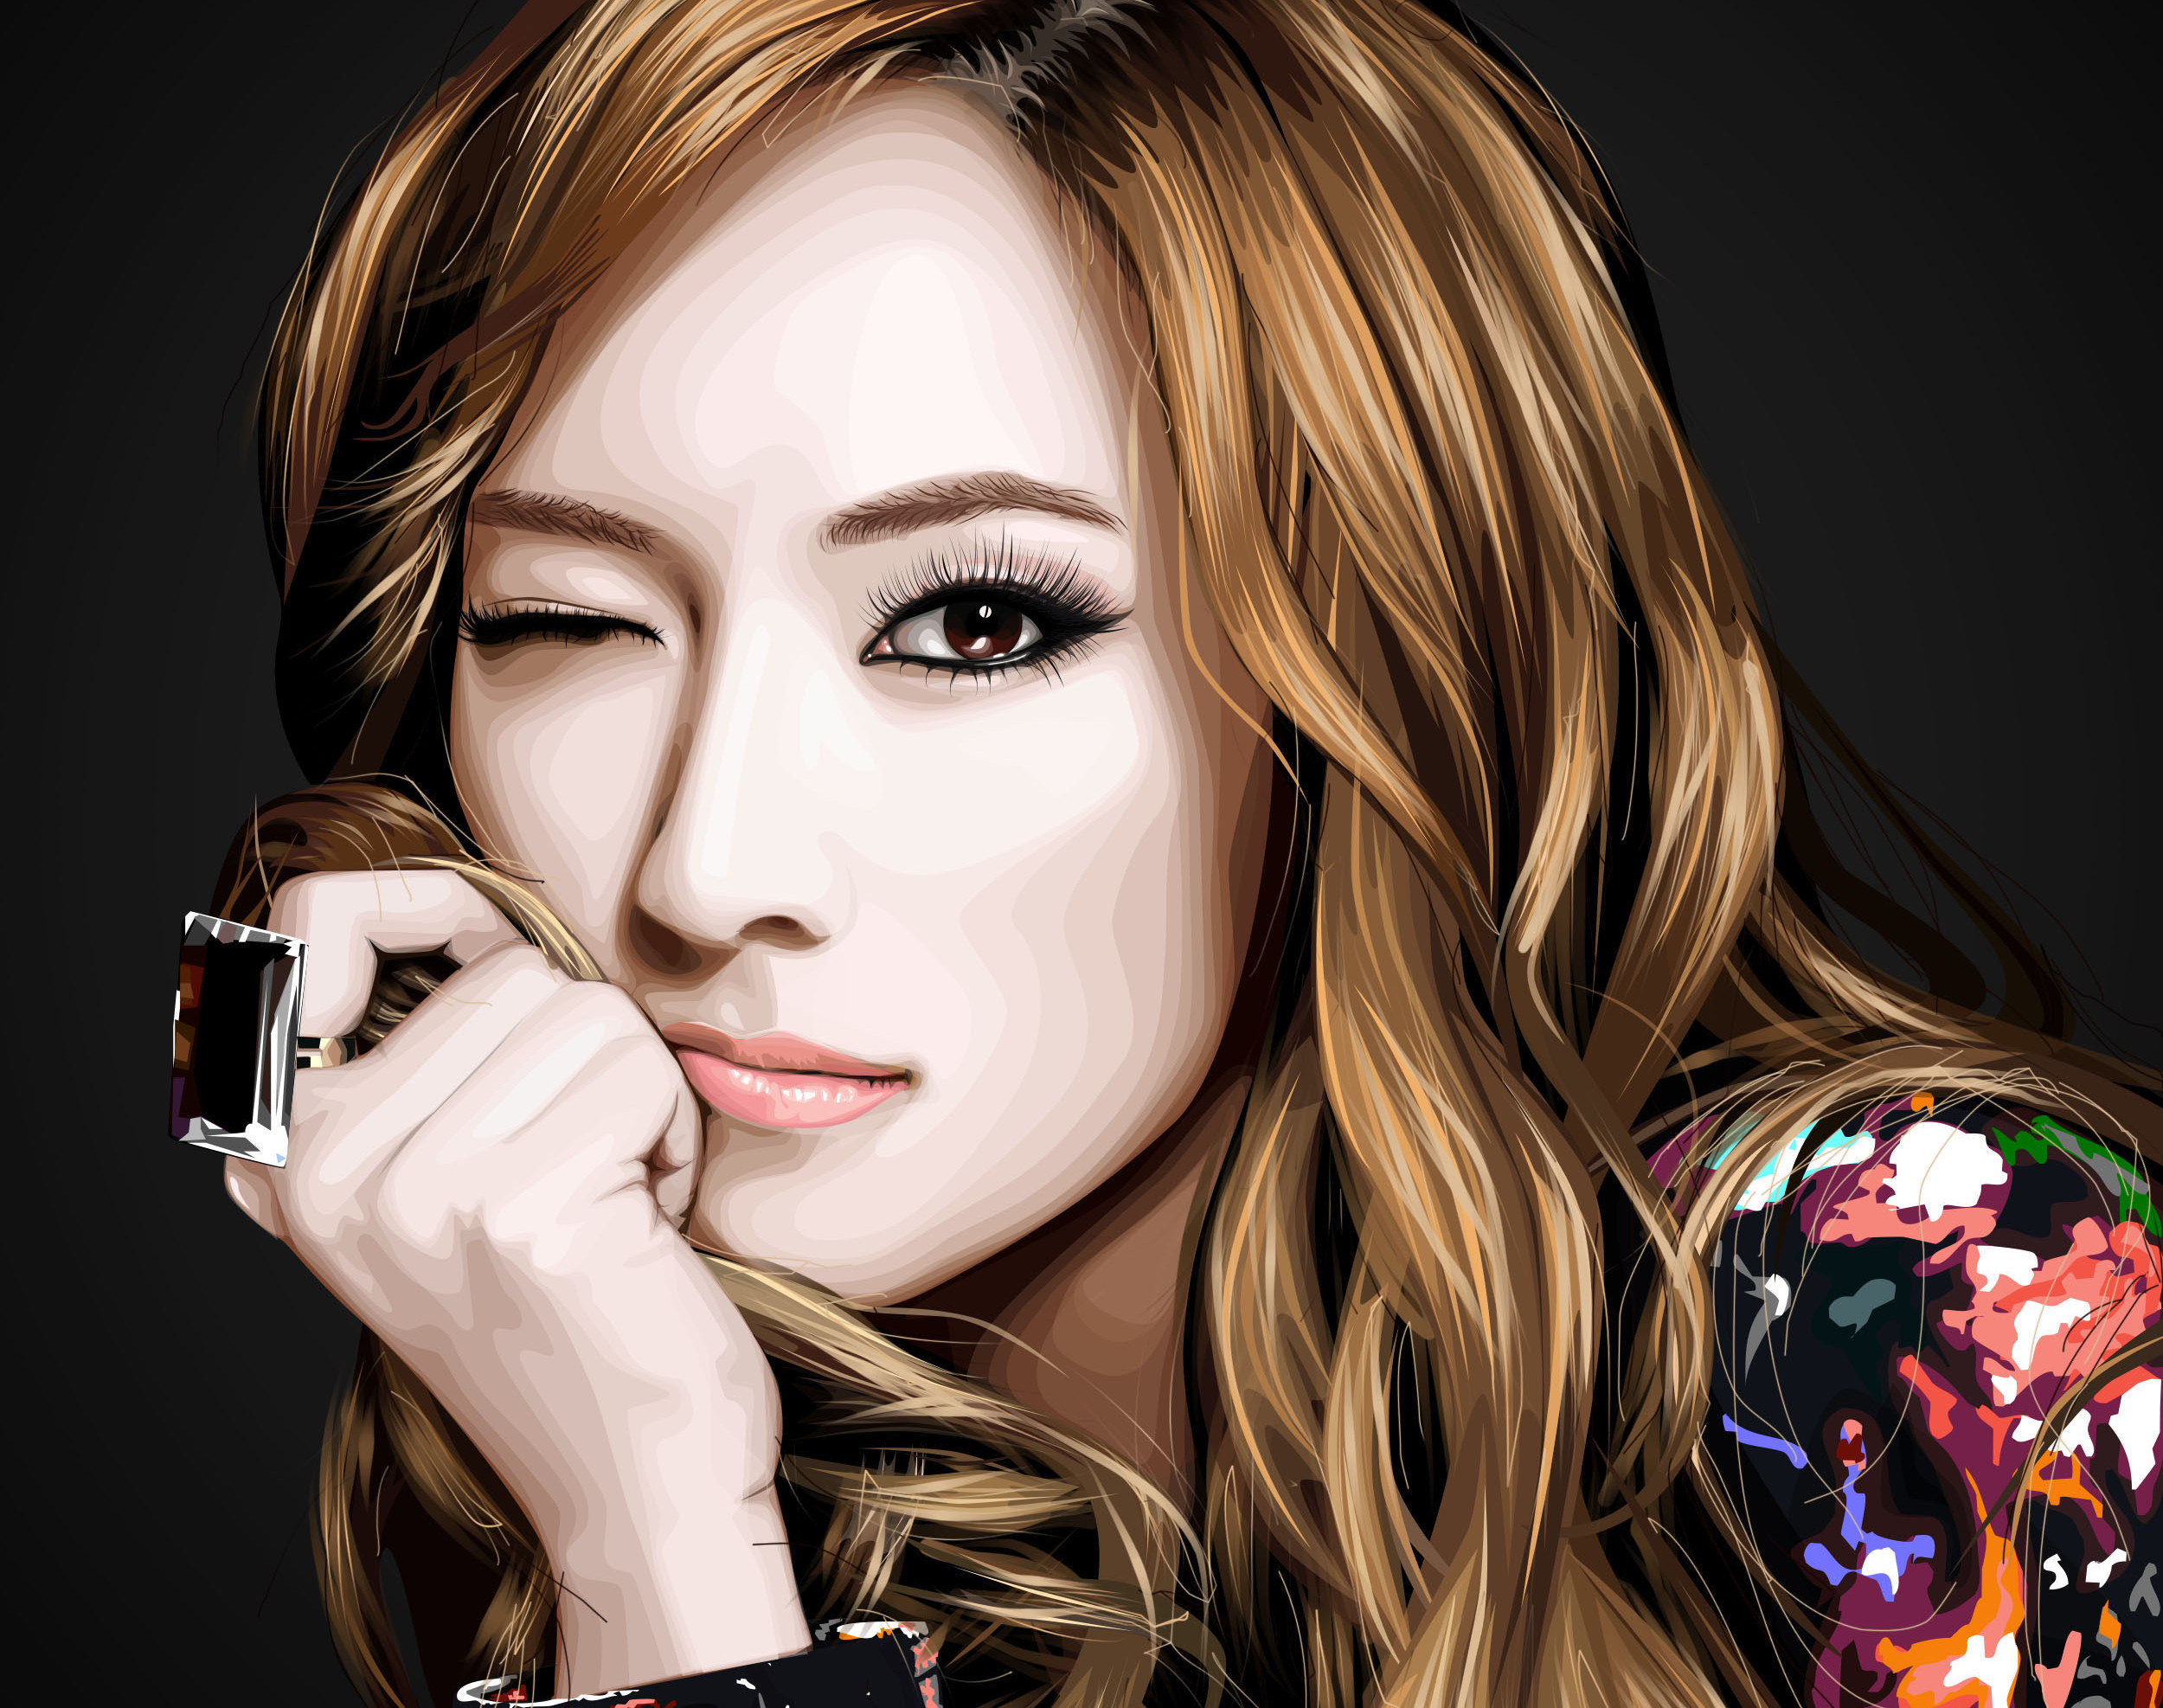 Cute Stylish Girl Wallpaper Download Jessica Jung Hd Wallpaper Background Image 2500x1974